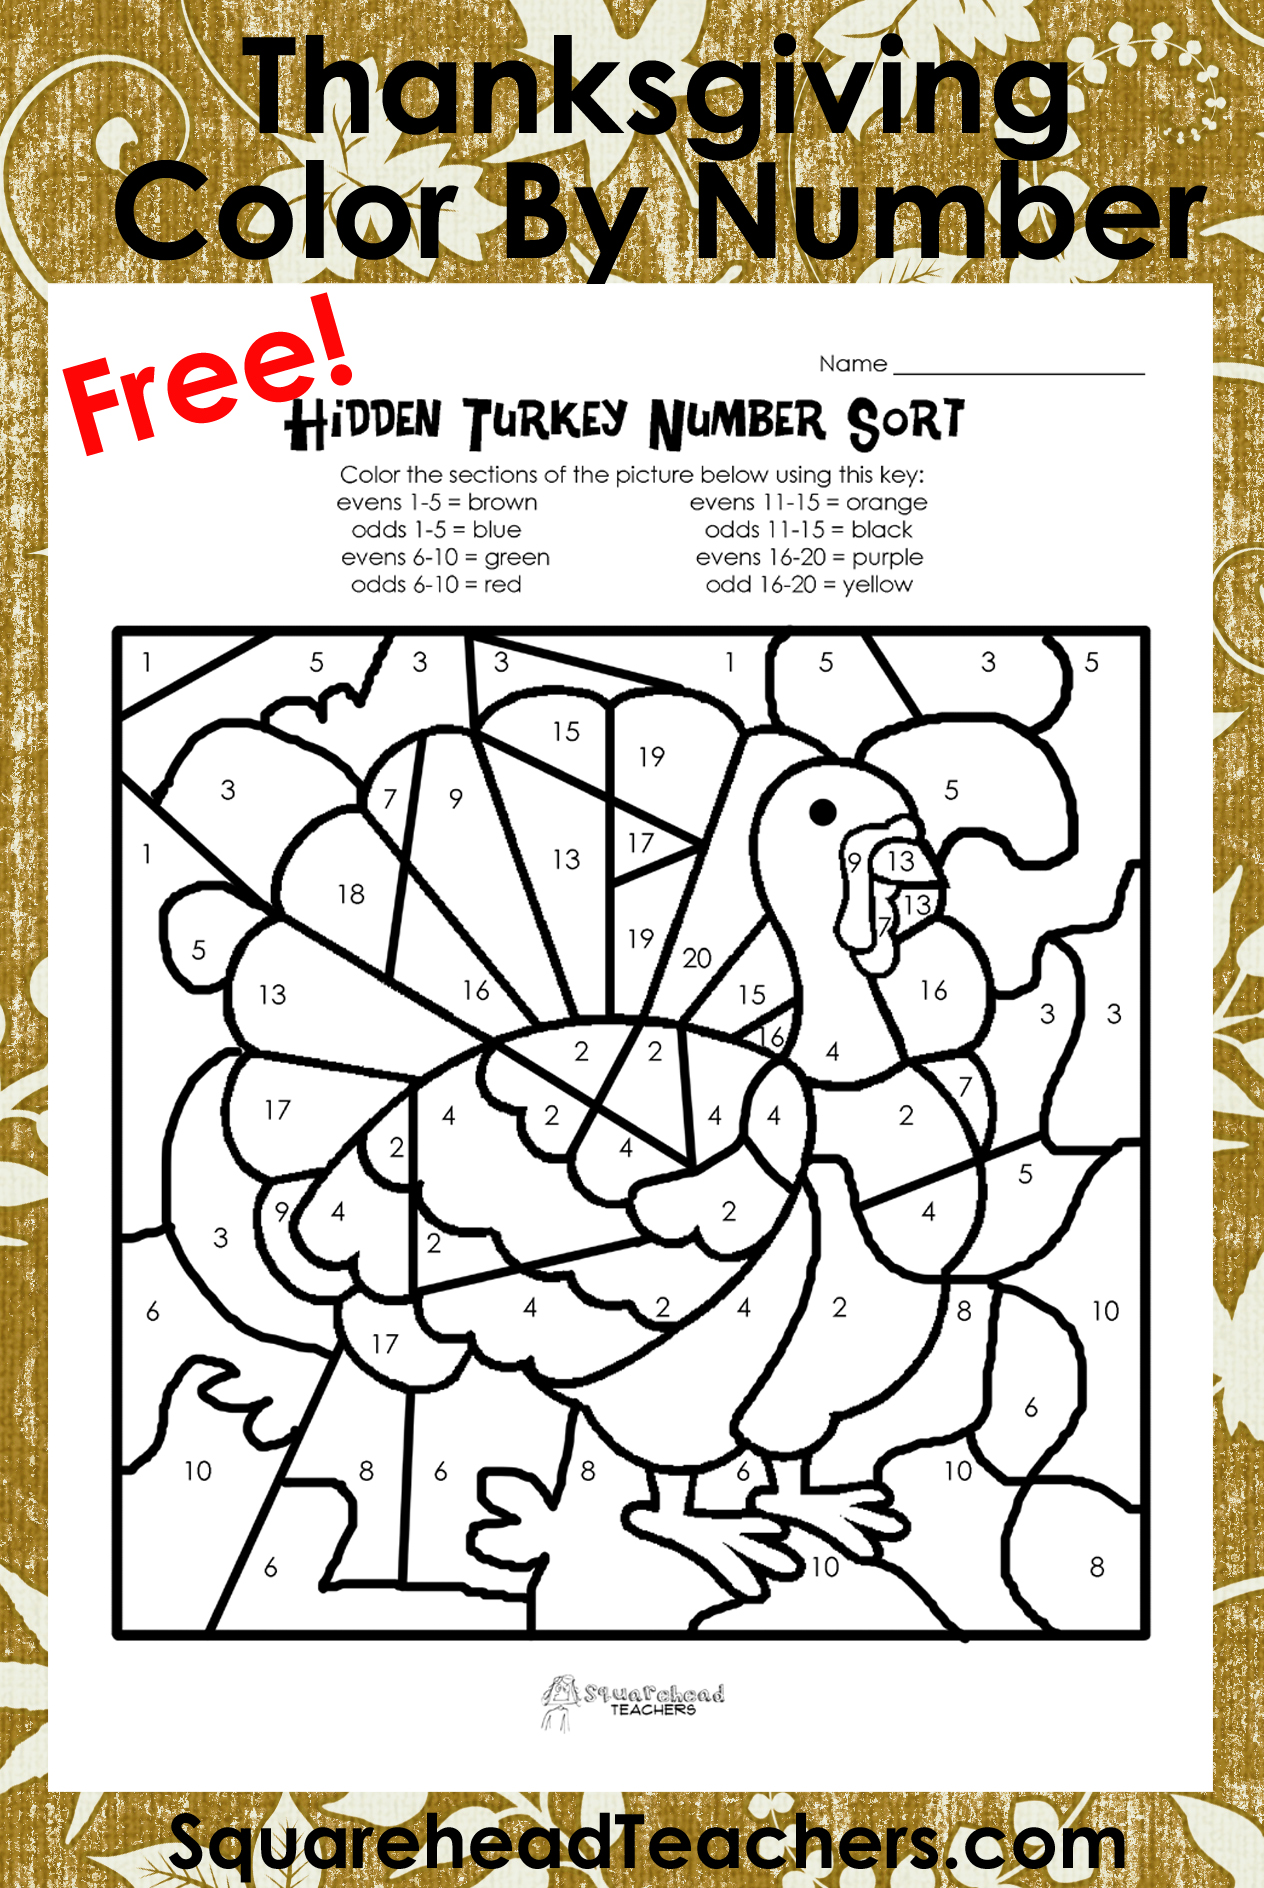 Thanksgiving Coloring Worksheet : Thanksgiving color by number odd evens sort squarehead